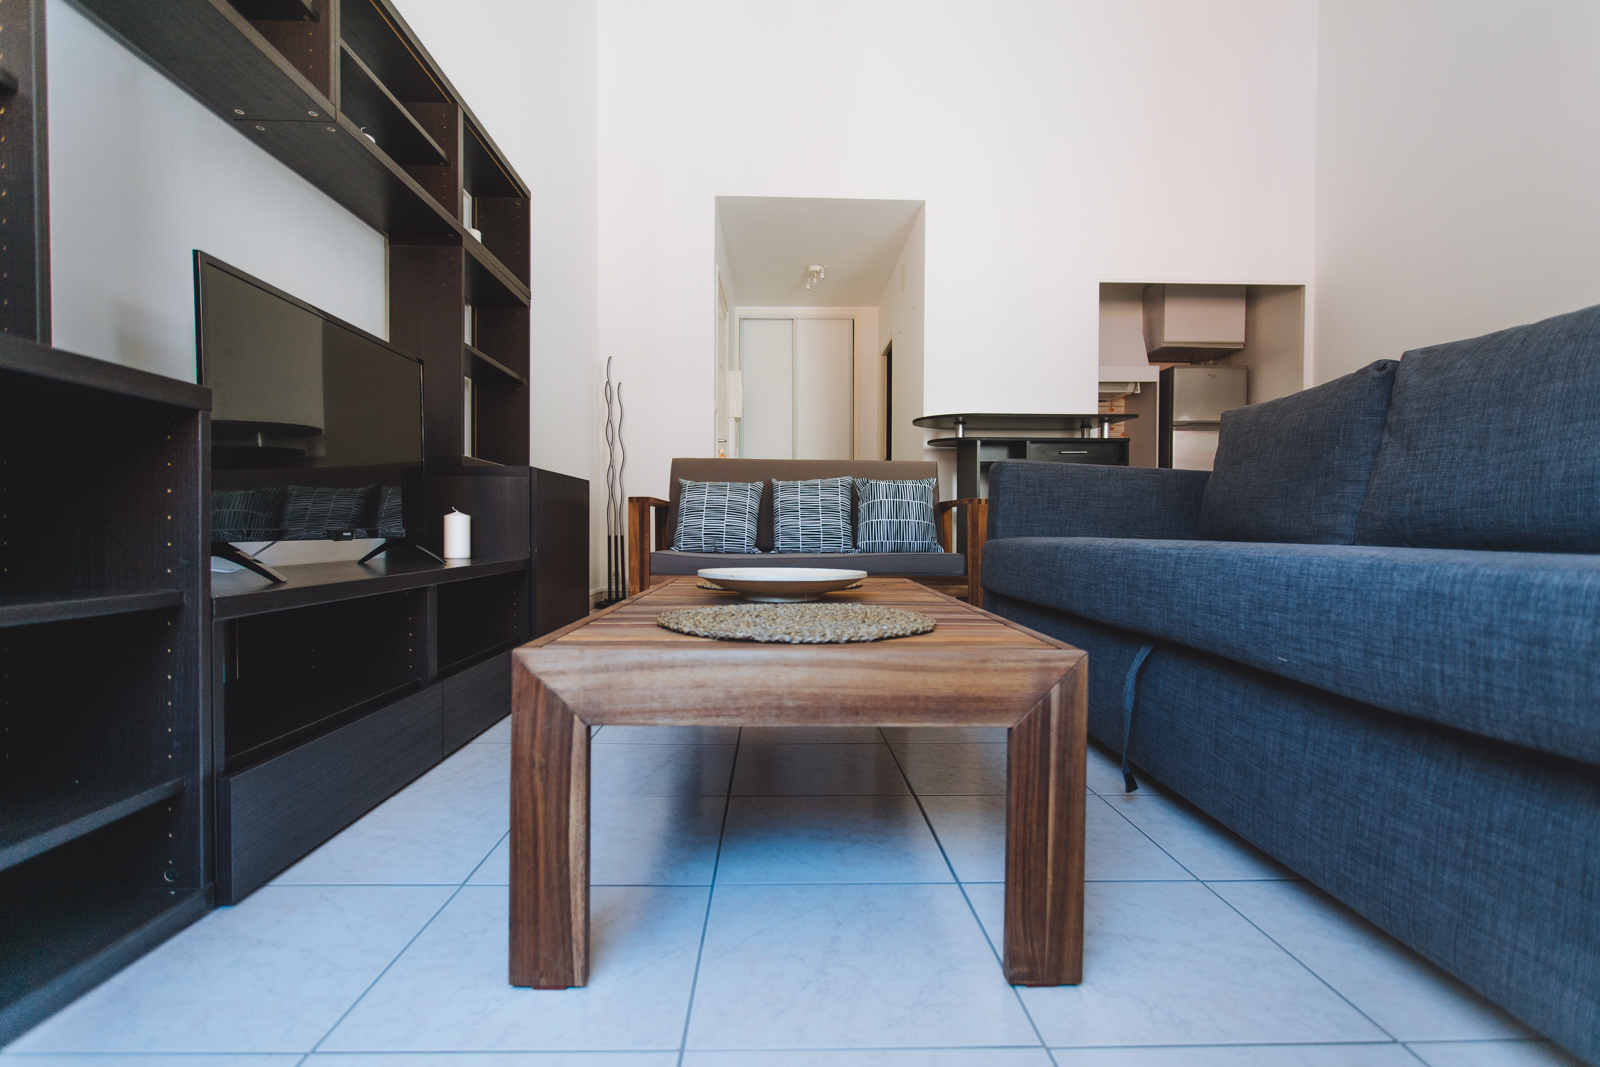 Geoffrey-Lucas-comissions-rent-home-toulouse-5.jpg